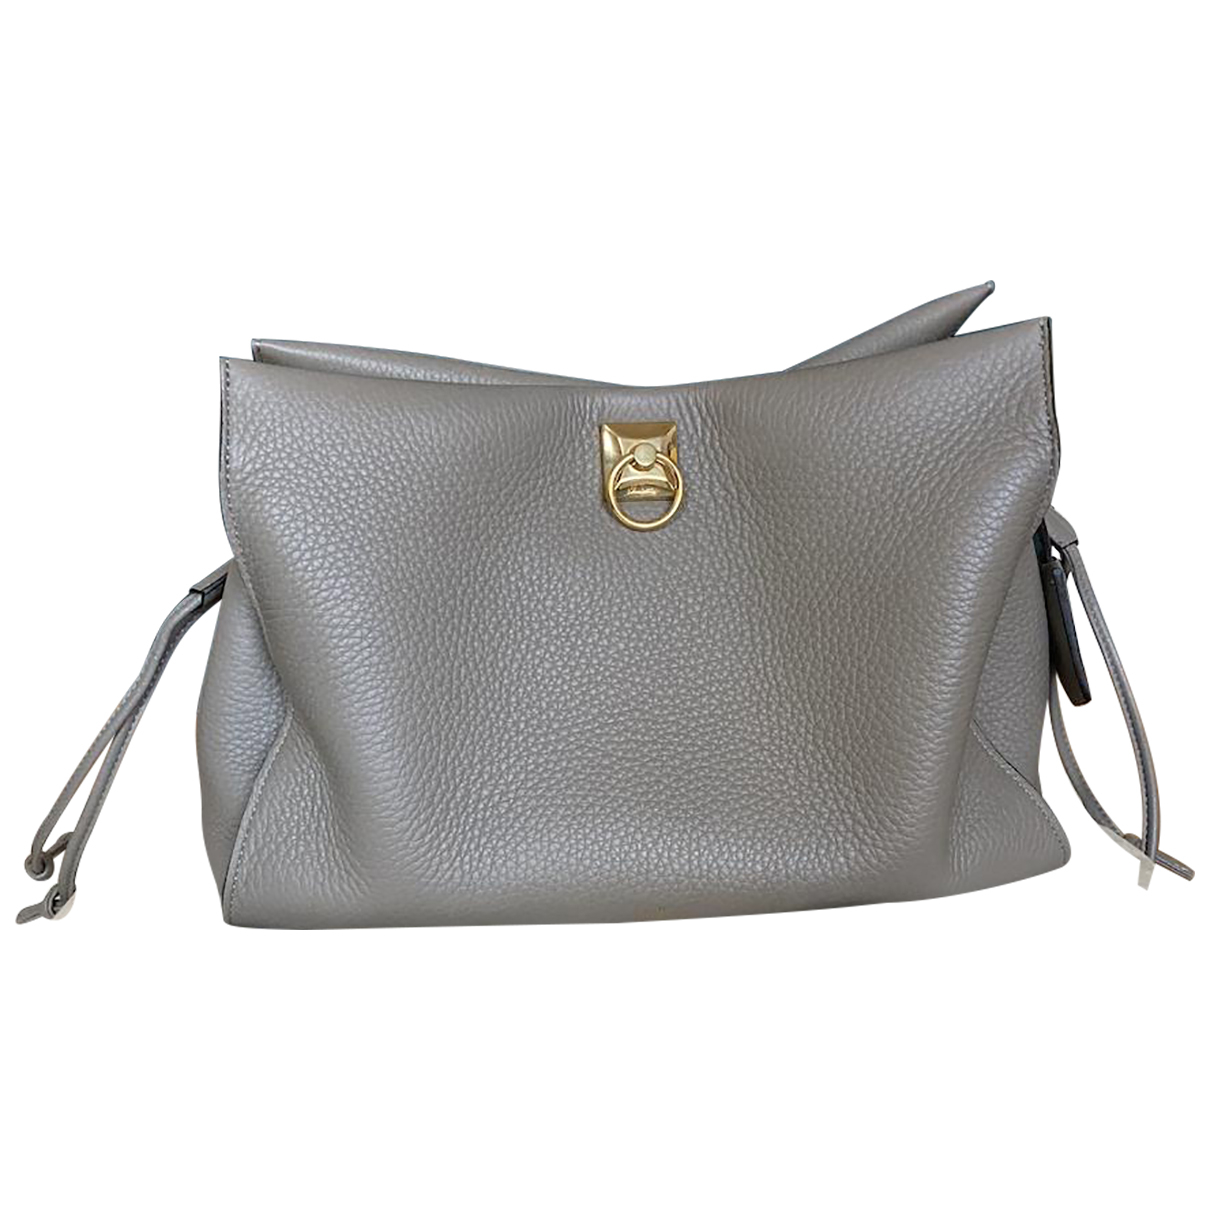 Mulberry \N Anthracite Leather handbag for Women \N